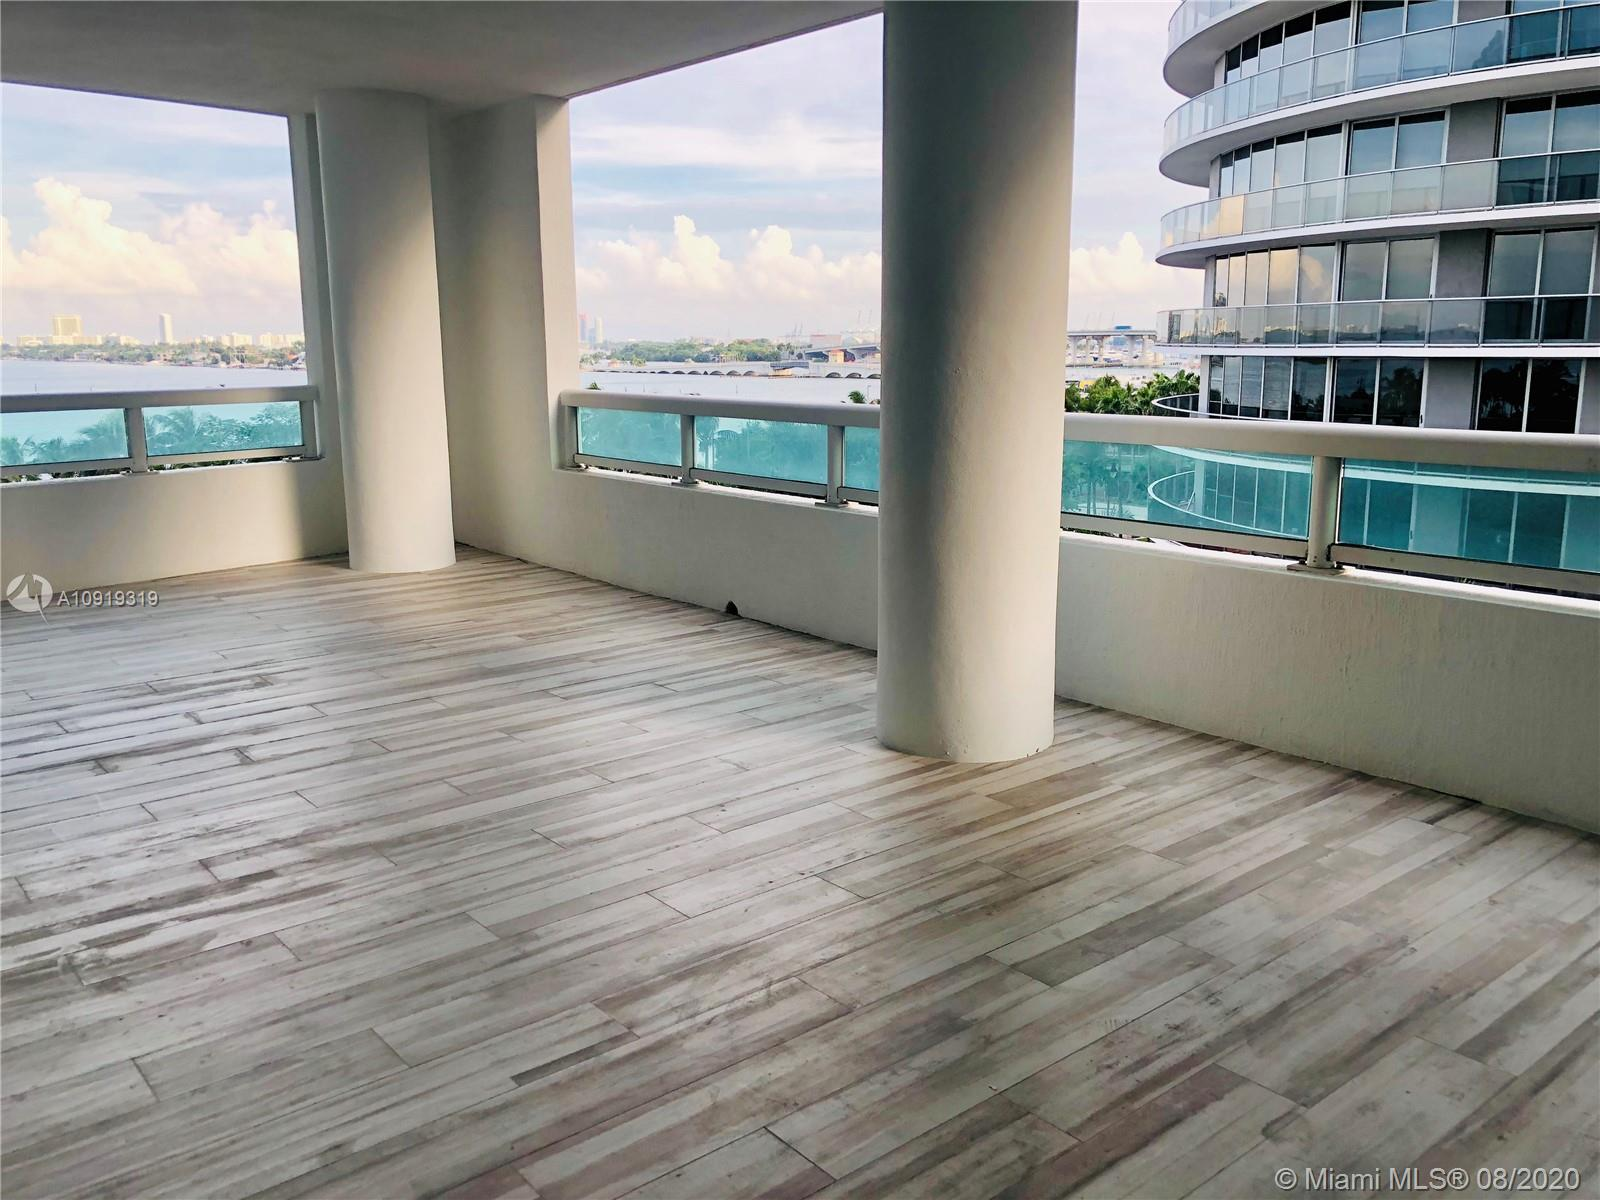 Beautiful unit in the heart of Biscayne.Centrally located near the bay and close to Restaurants, Miami District Design, Brickell, and Miami Beach just a few minutes away.Totally furnished with a dryer and washer inside the unit. Huge balcony with a spectacular view of the bay. The building offers a swimming pool, jacuzzi, gym, and more amenities.